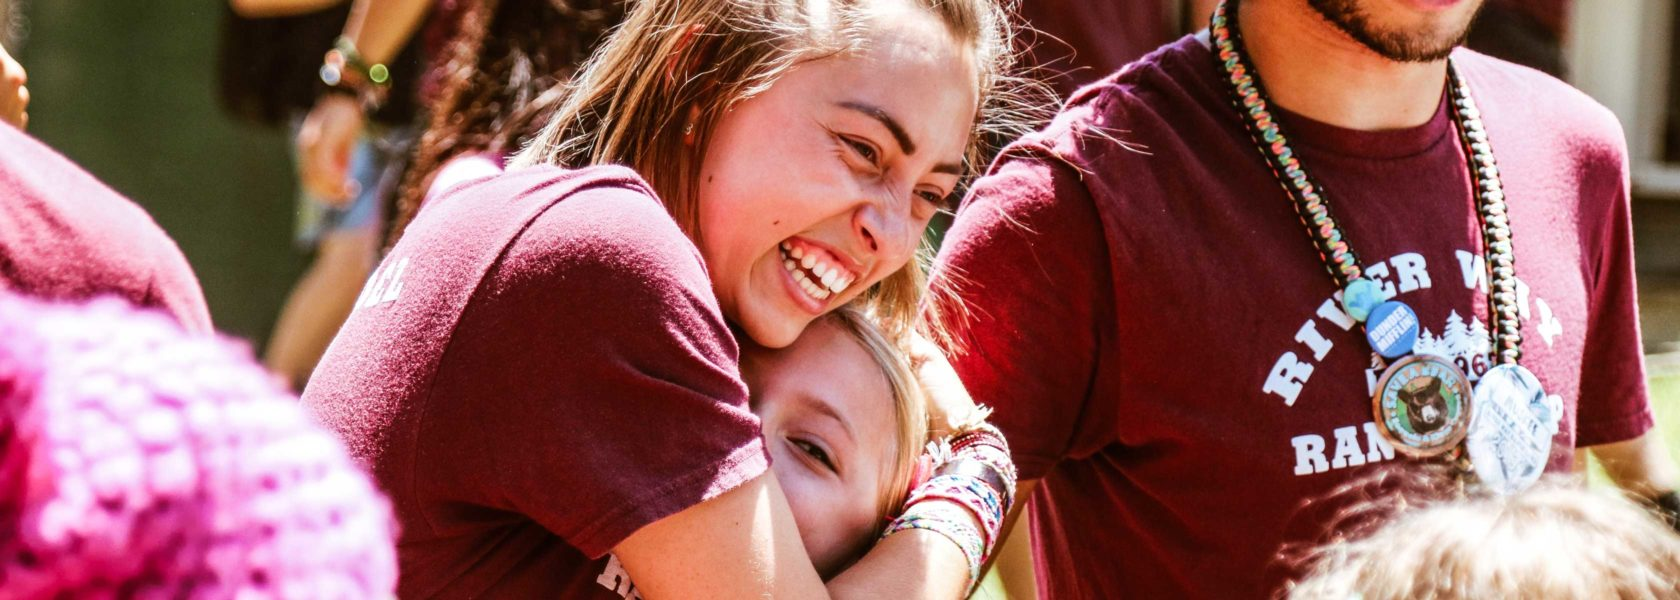 A counselor hugging a camper and smiling.